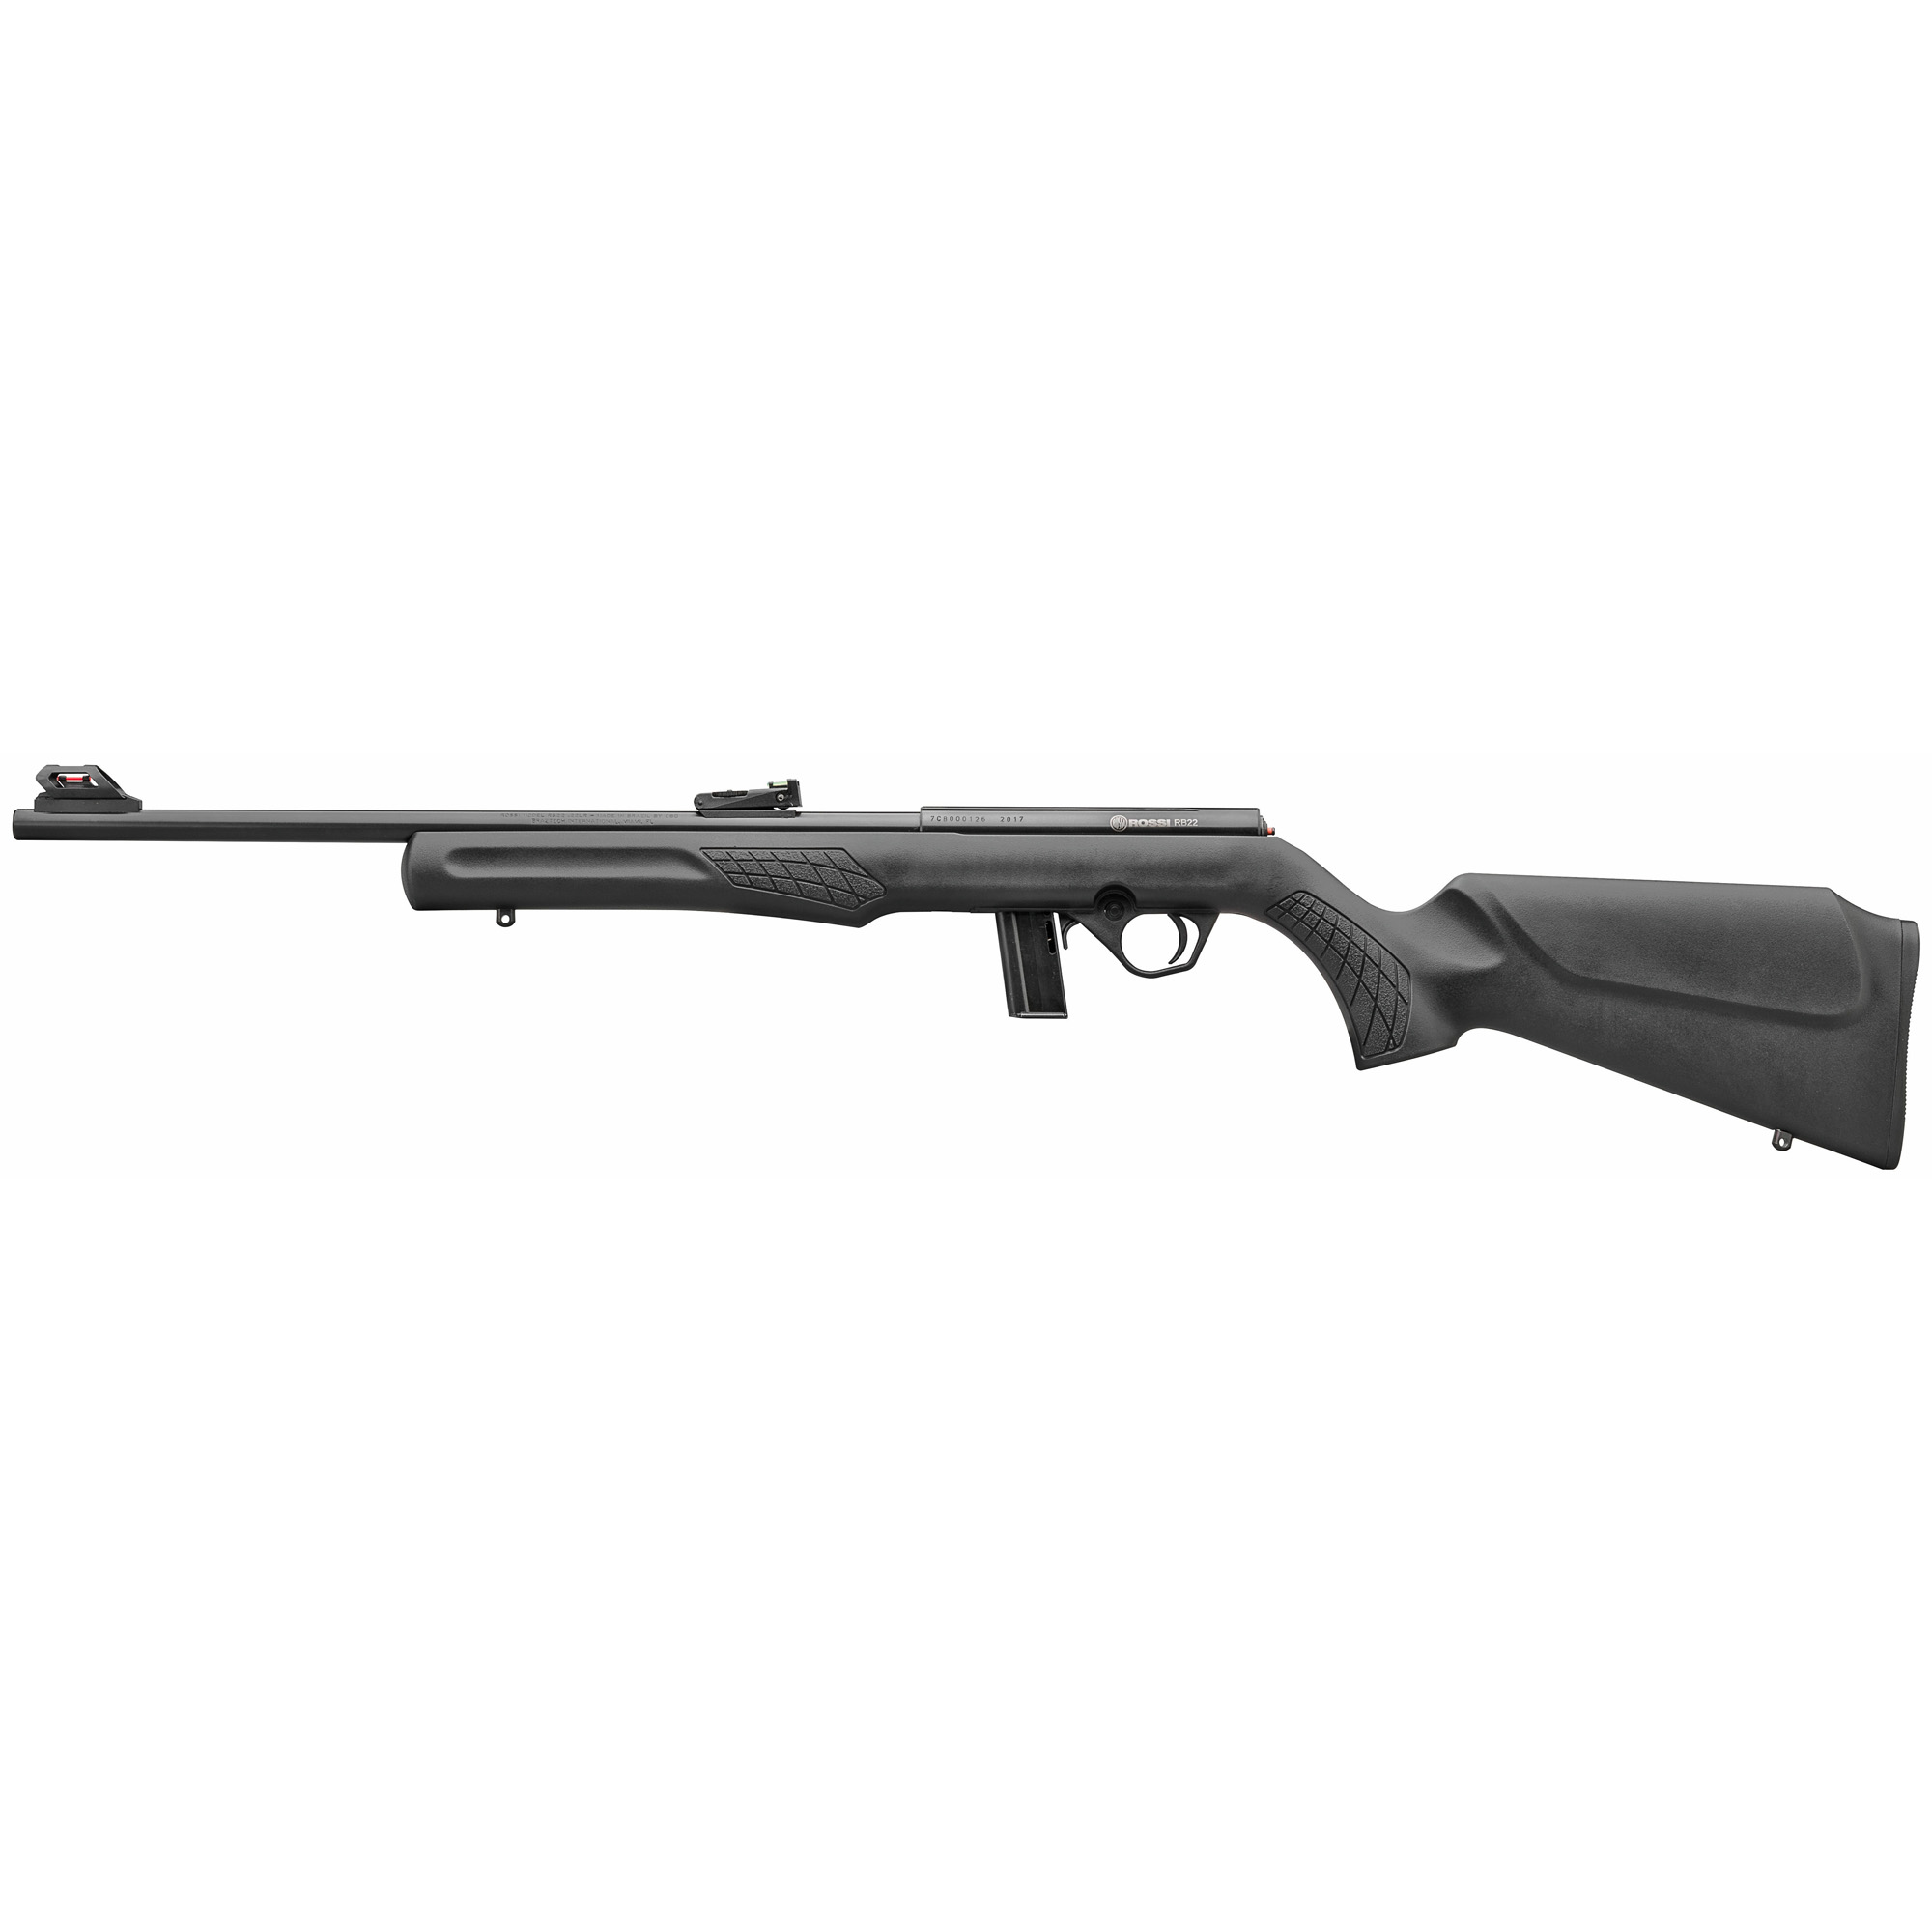 """The Rossi(R) RB22 is a reliable and accurate bolt action rimfire rifle. The textured synthetic Monte Carlo stock is perfectly mated to an 18"""" free-float barrel for outstanding balance and feel. Offered in .22 LR the RB22 features fully adjustable fiber optic sights"""" 10 round detachable magazine"""" and the receiver has a 3/8"""" dovetail to accept scope mounts."""